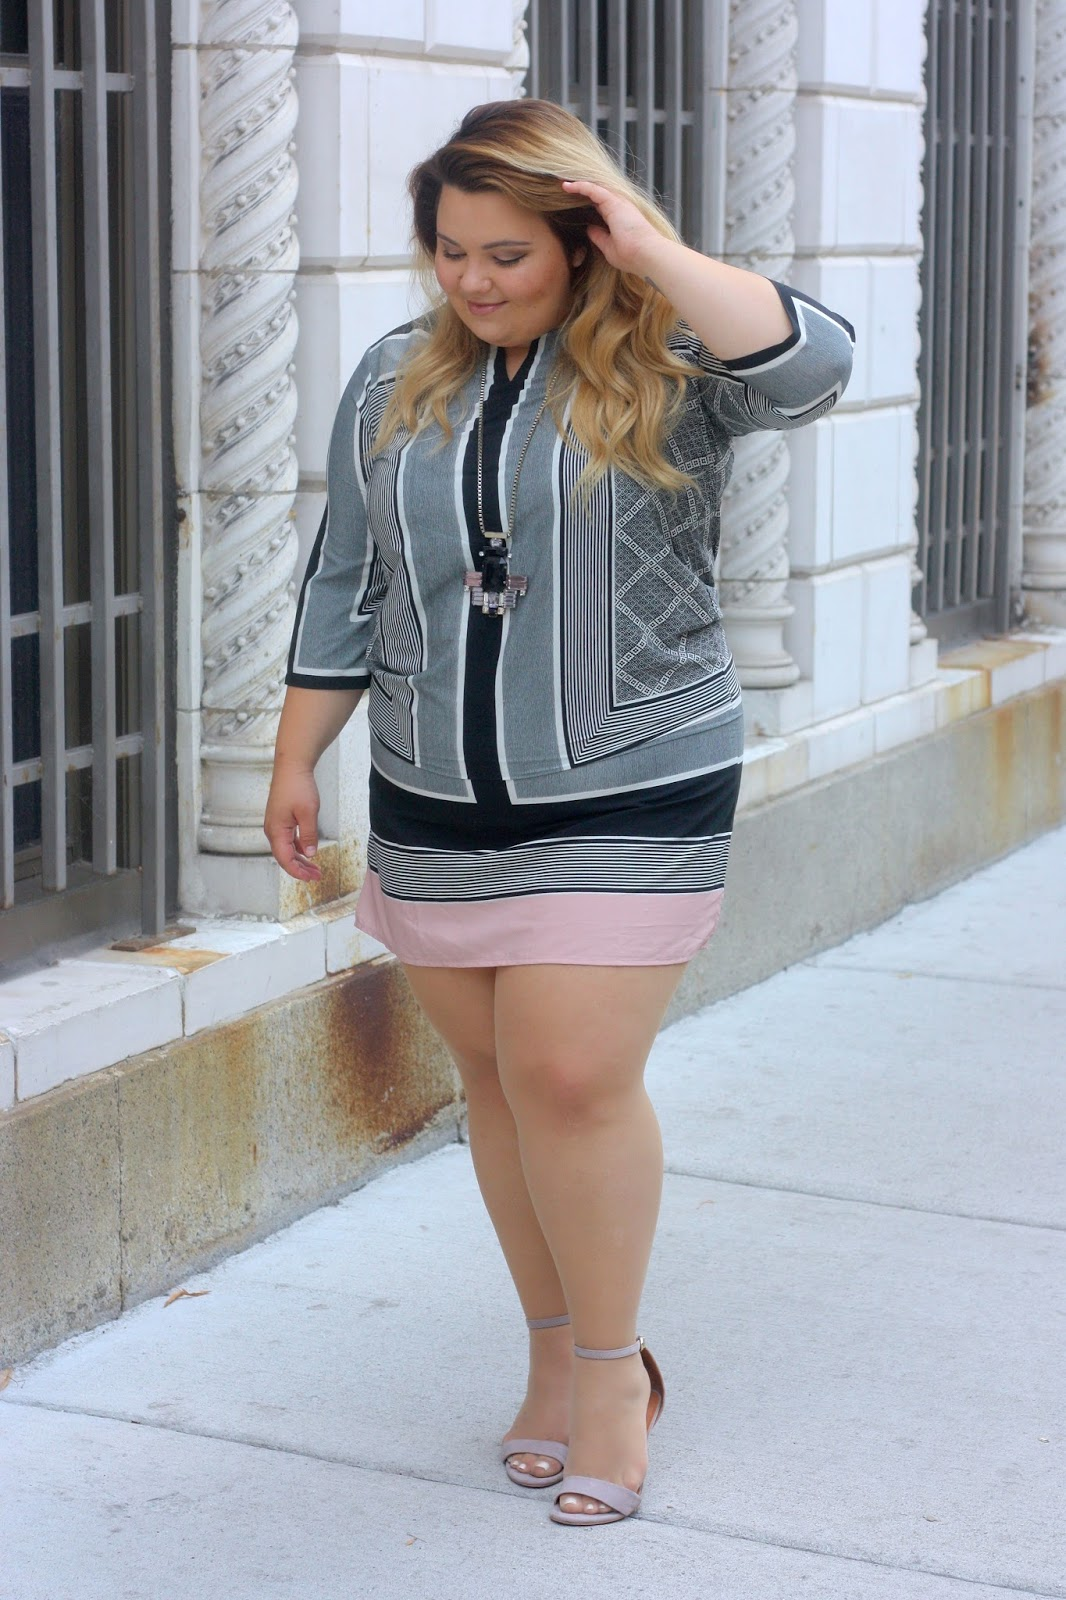 plus size shifit dress, love lianca, natalie craig, natalie in the city, chicago, plus size fashion blogger, chicago fashion blogger, fatshion, OOTD, Windy city bloggers, chicago blogger network